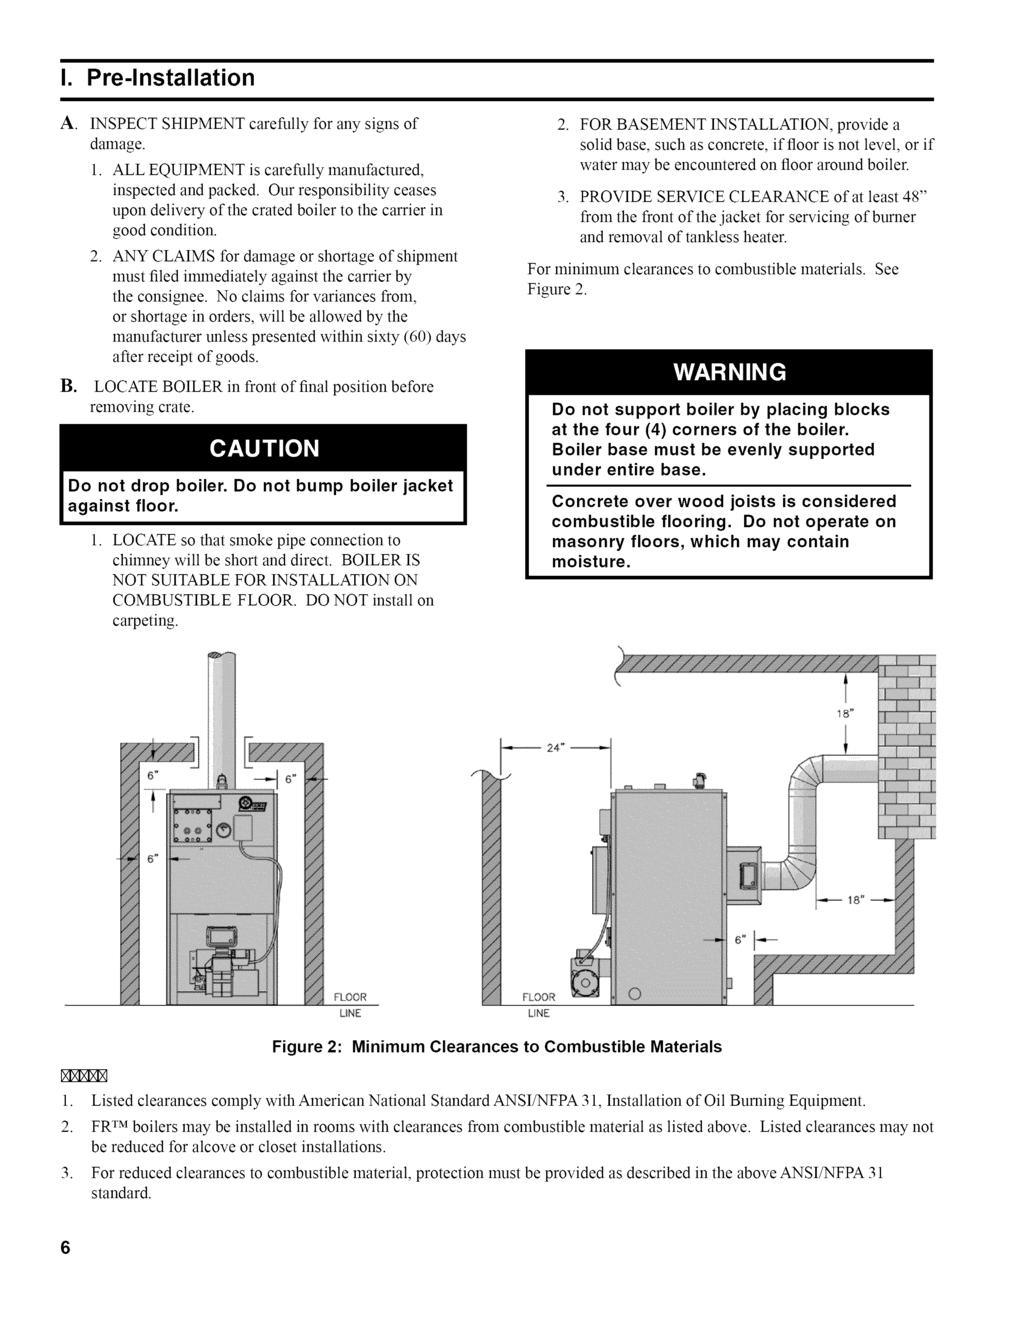 Installation Operating And Service Instructions Fr Rmseries Honeywell L7224 Wiring Diagram I Pre Lnstallation A Inspect Shipment Damage Carefully For Any Signs Of